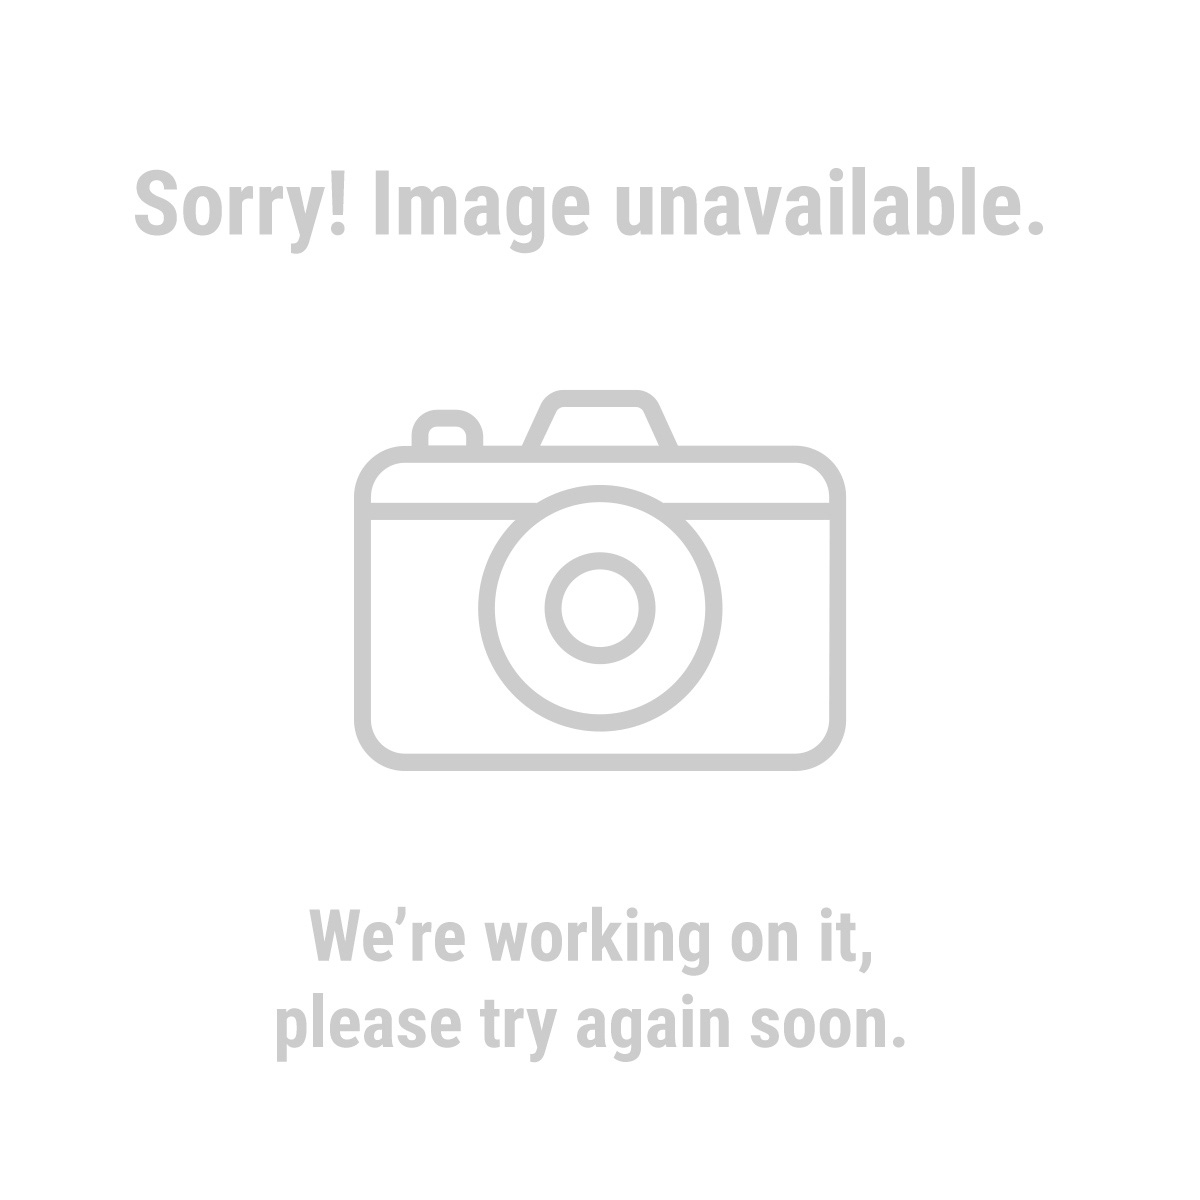 Harbor Freight Tools 37315 5 Pack 3-3/4'', 120 Grit Hook and Loop Triangle Sanding Pads